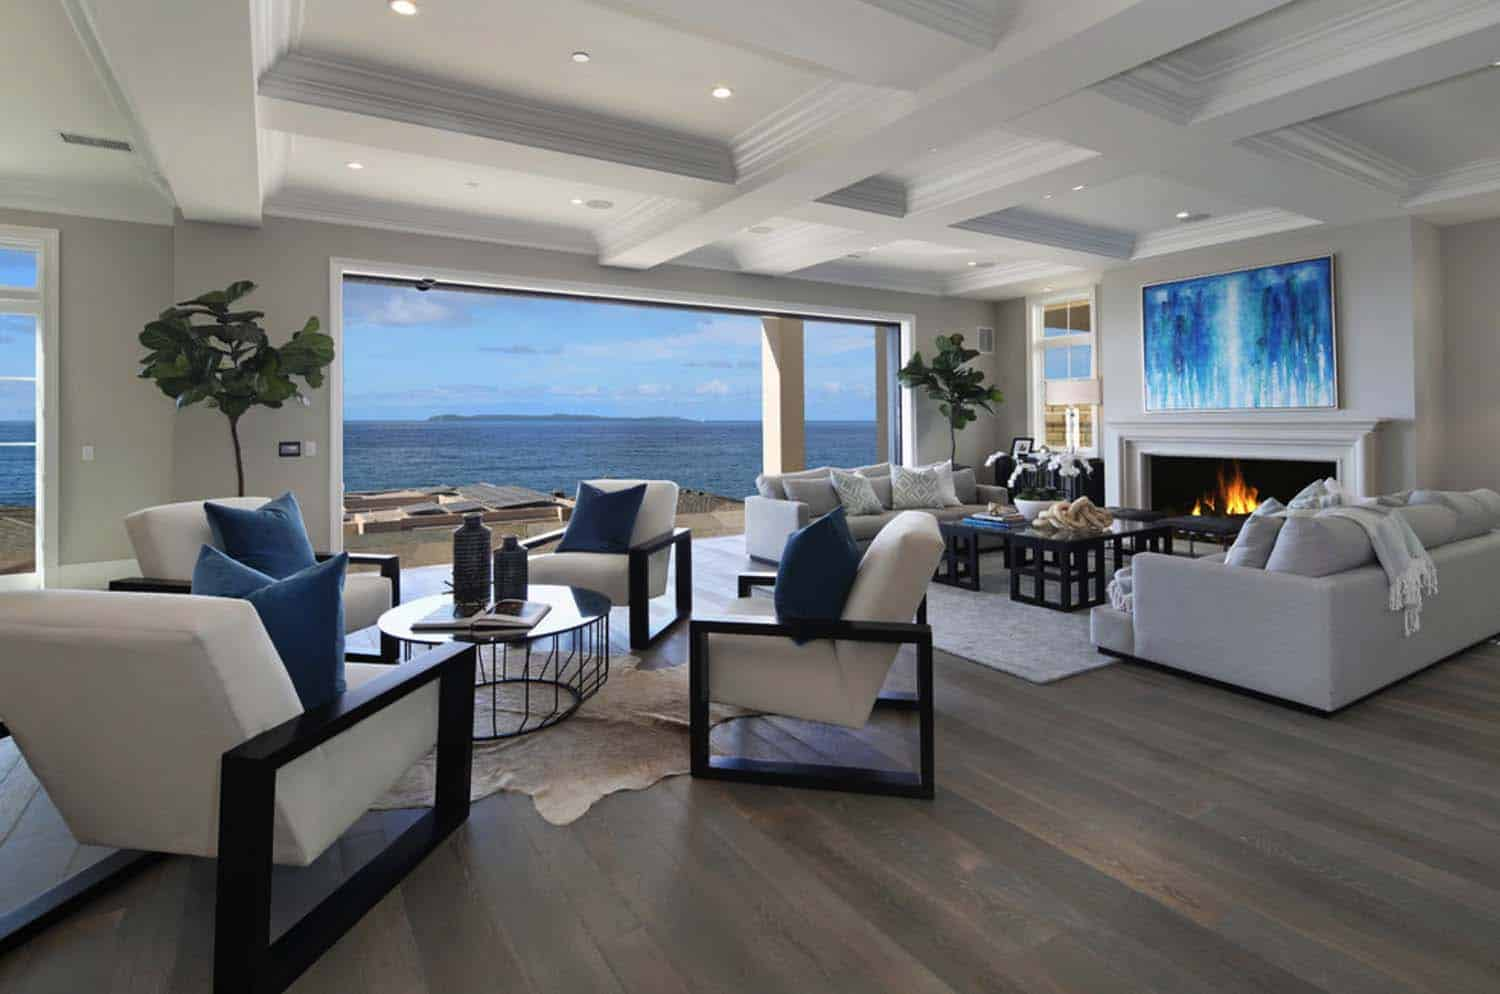 Beach House Design Brandon Architects 04 1 Kindesign